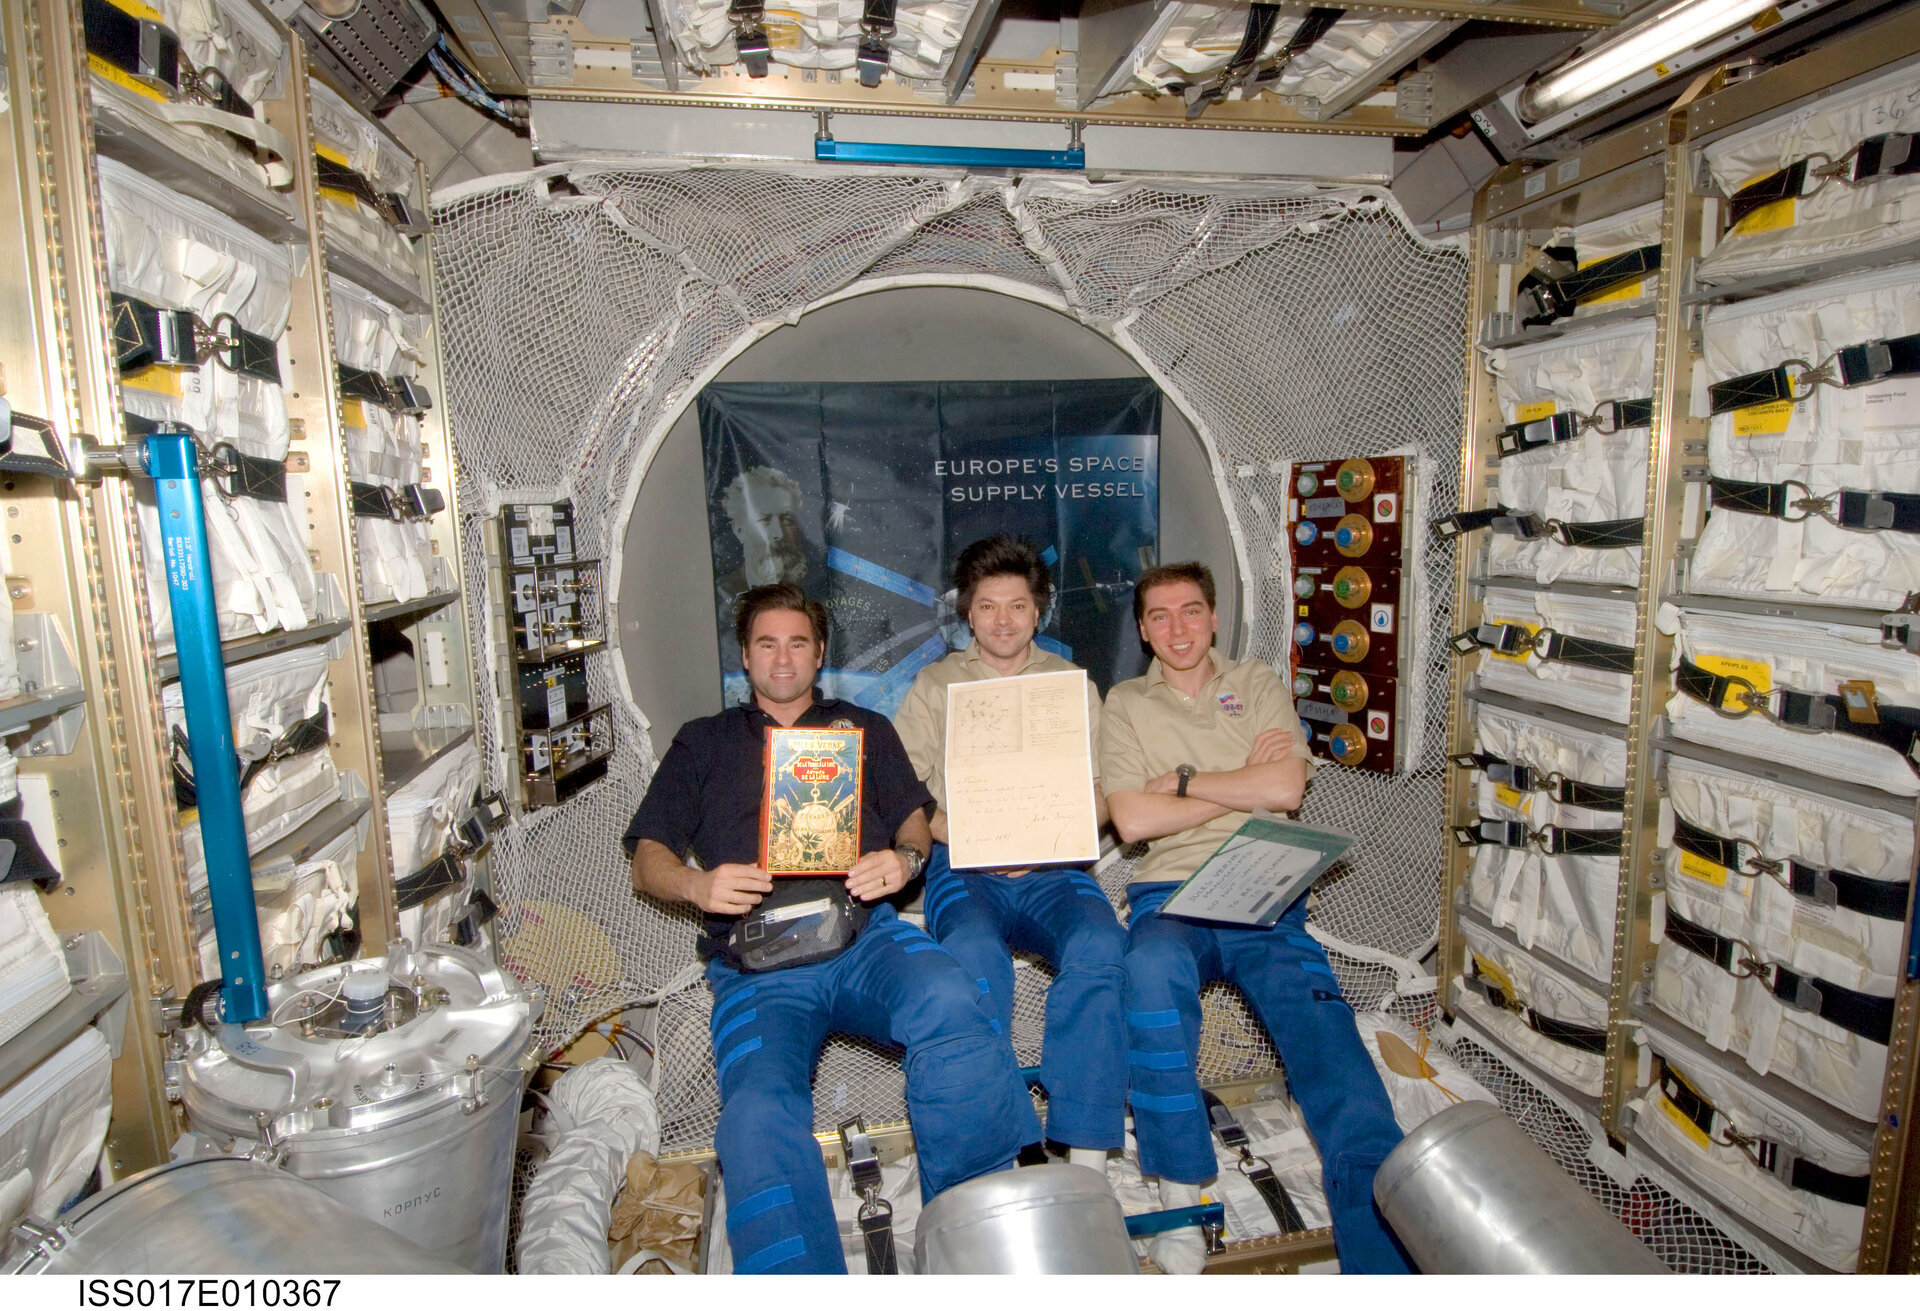 ISS Expedition crewmembers display the Jules Verne book and manuscripts delivered to the ISS